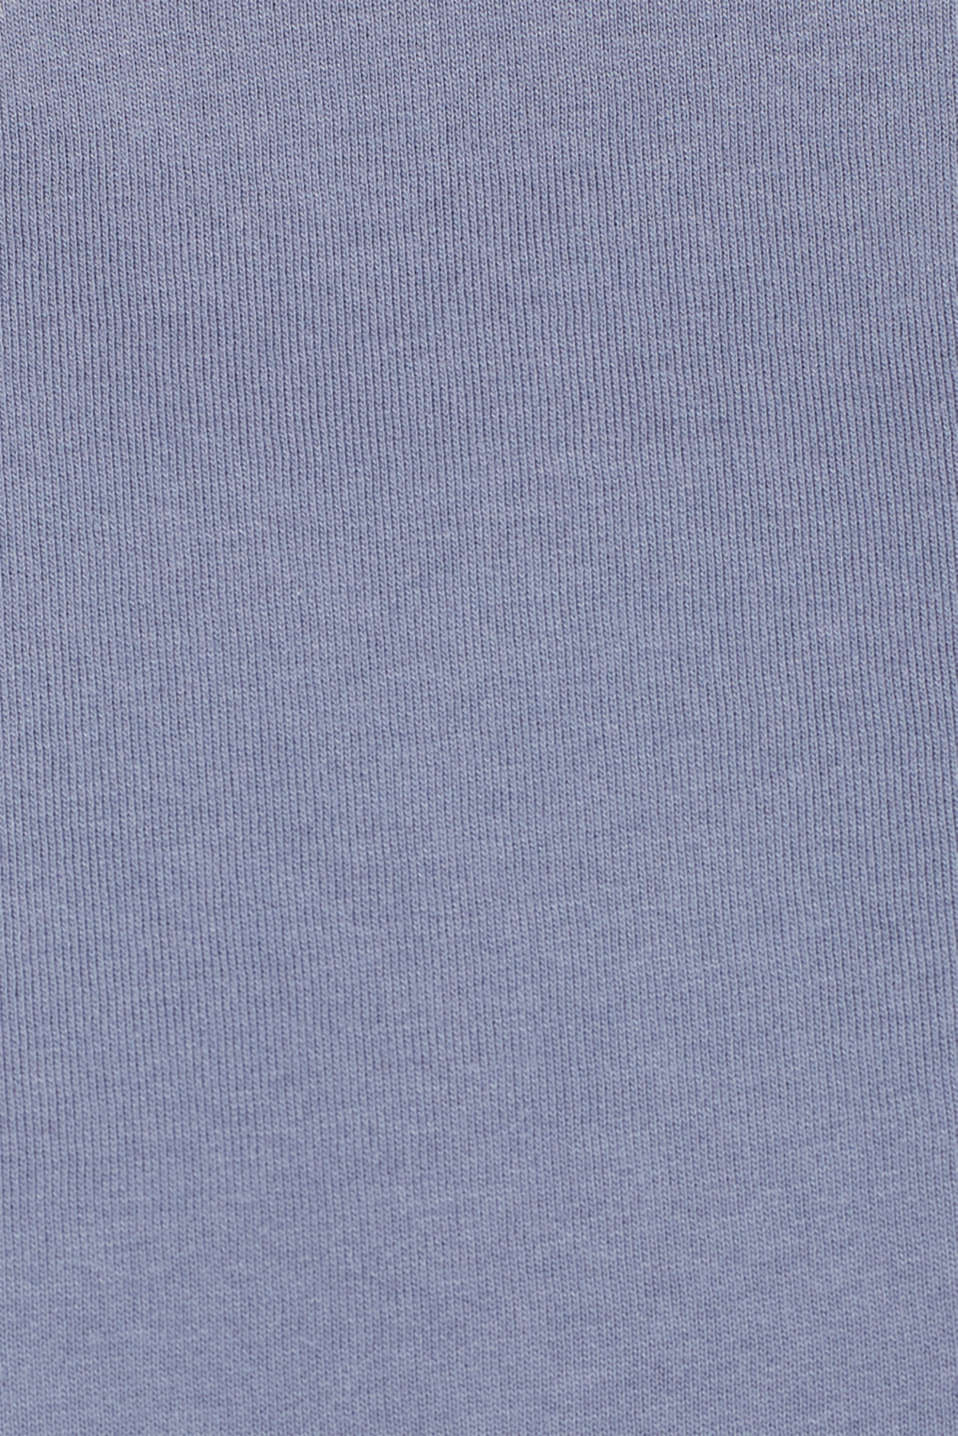 Jersey trousers with ribbed cuffs, GREY BLUE, detail image number 4